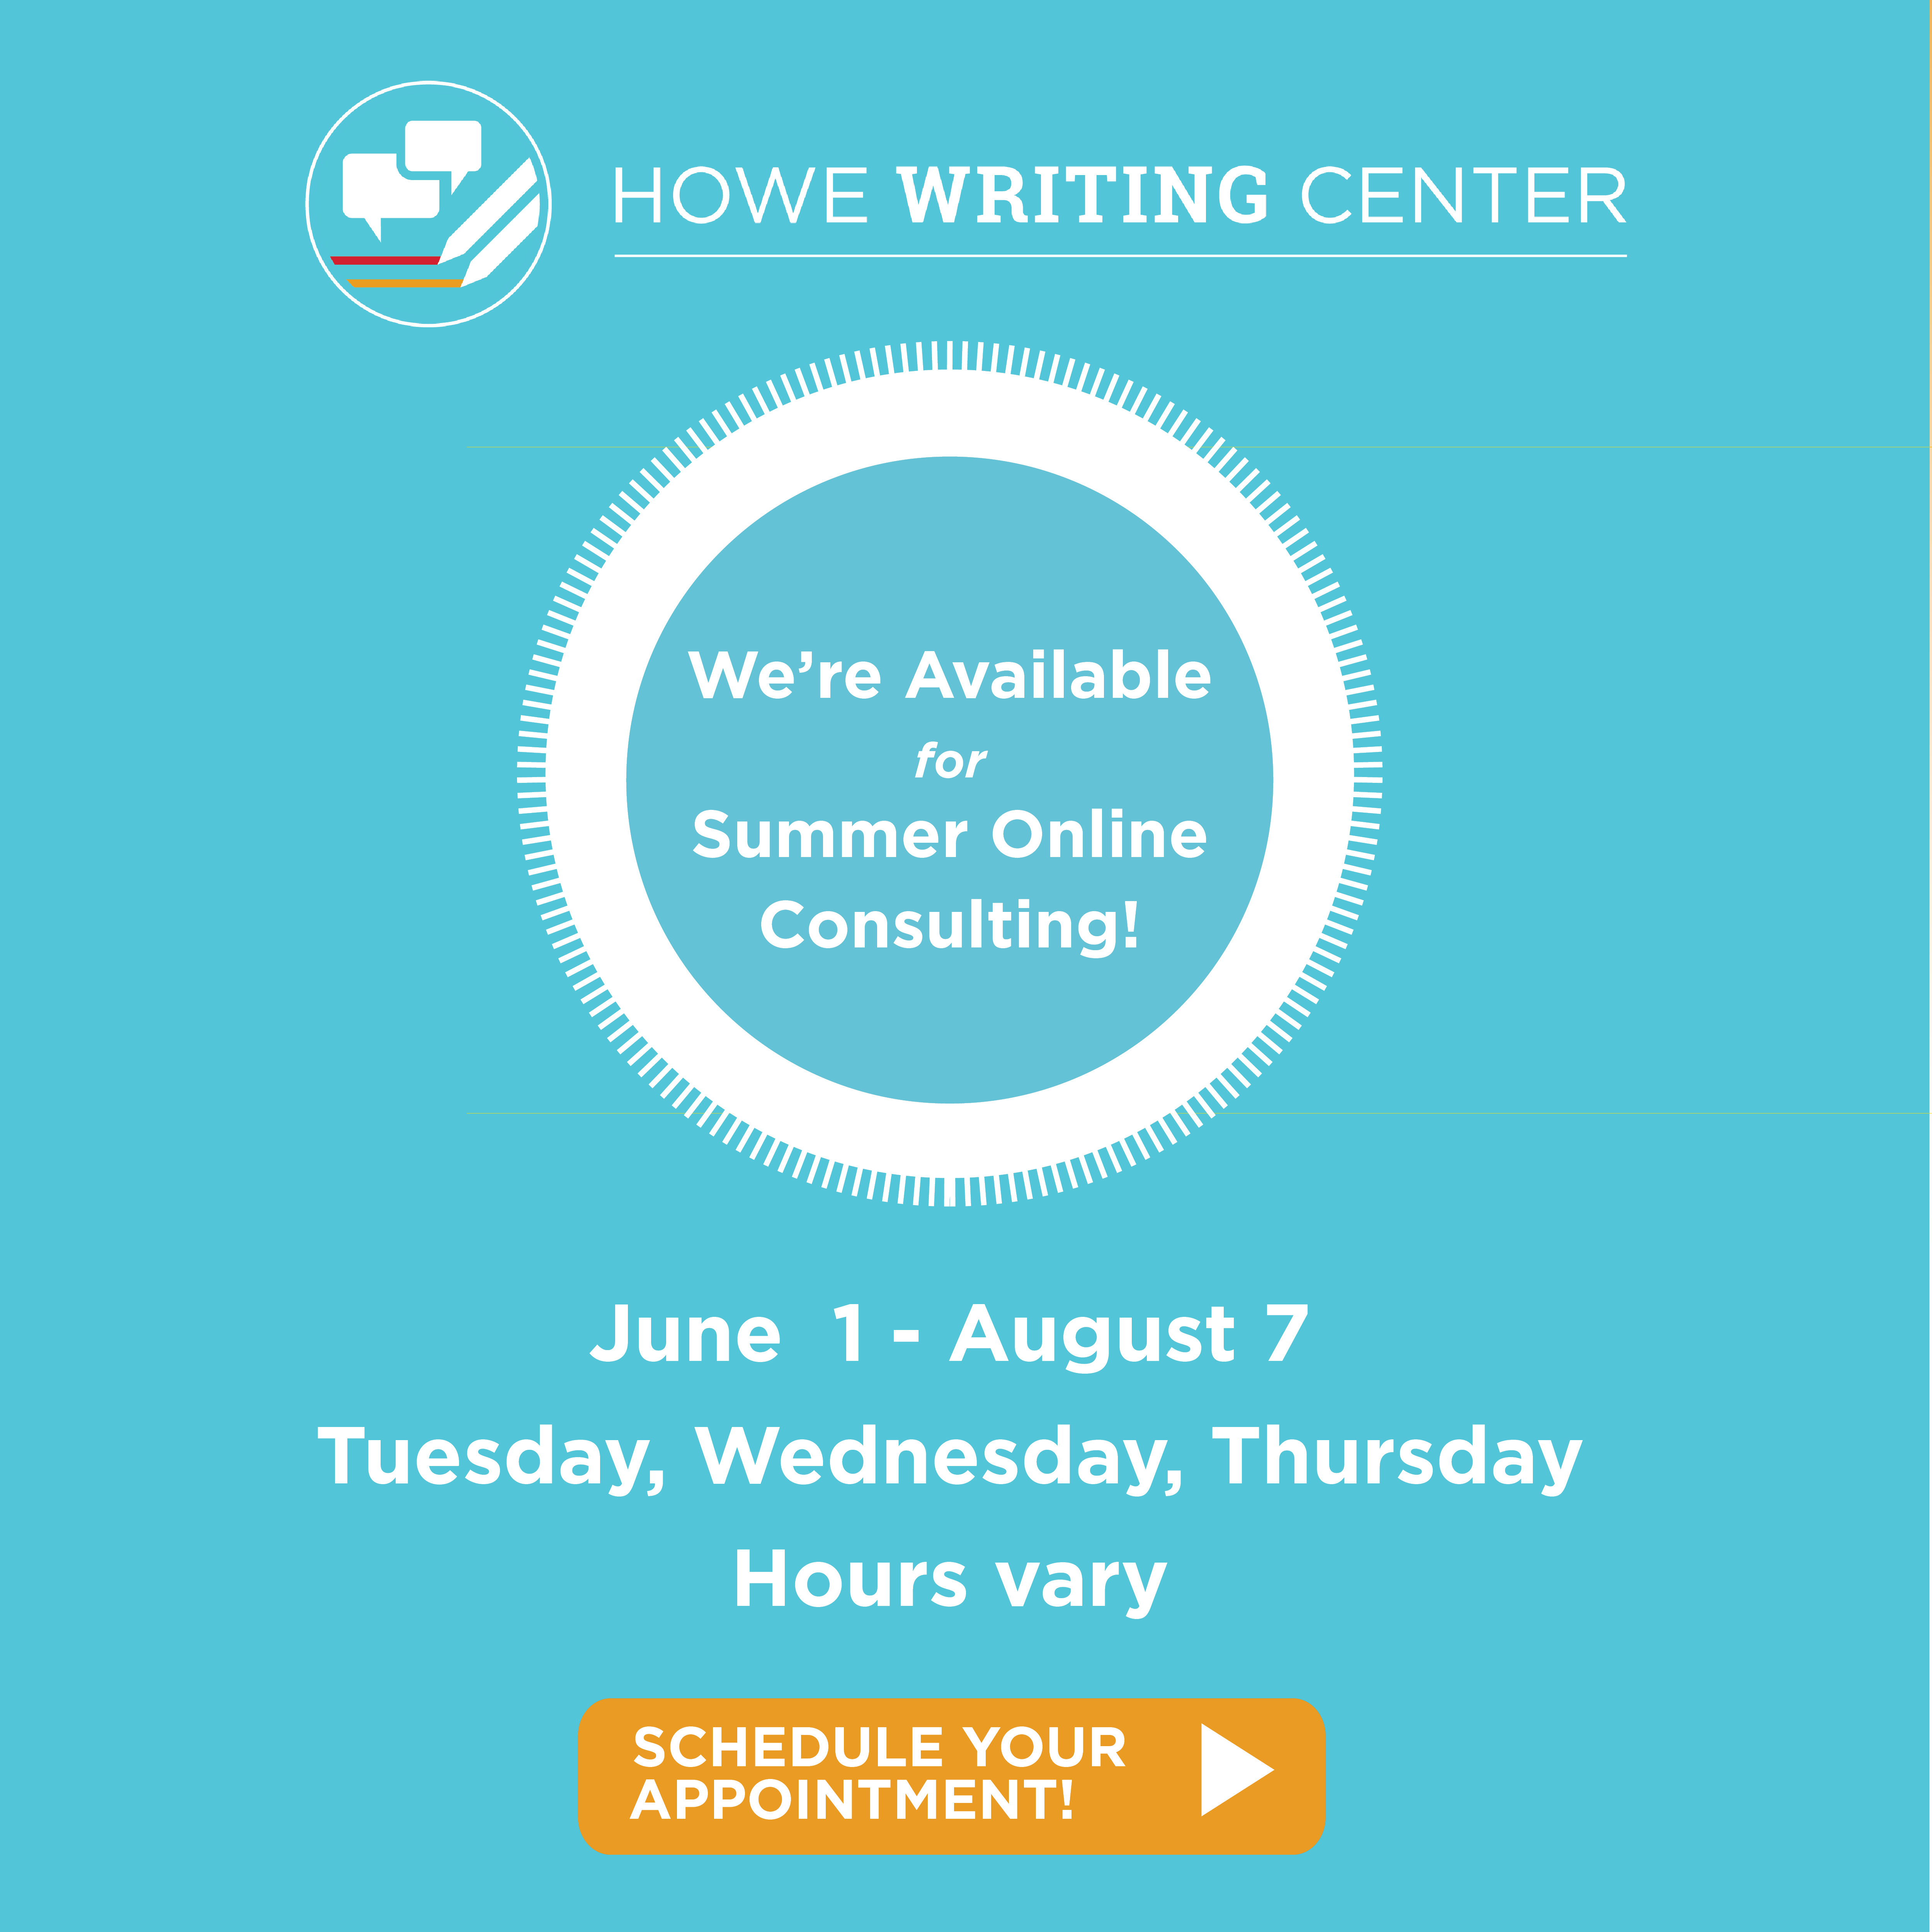 The Howe Writing Center logo. We're available for online writing consulting.  June 1-August 7, Tuesday, Wednesday, Thursday, hours vary. Schedule your appointment now.